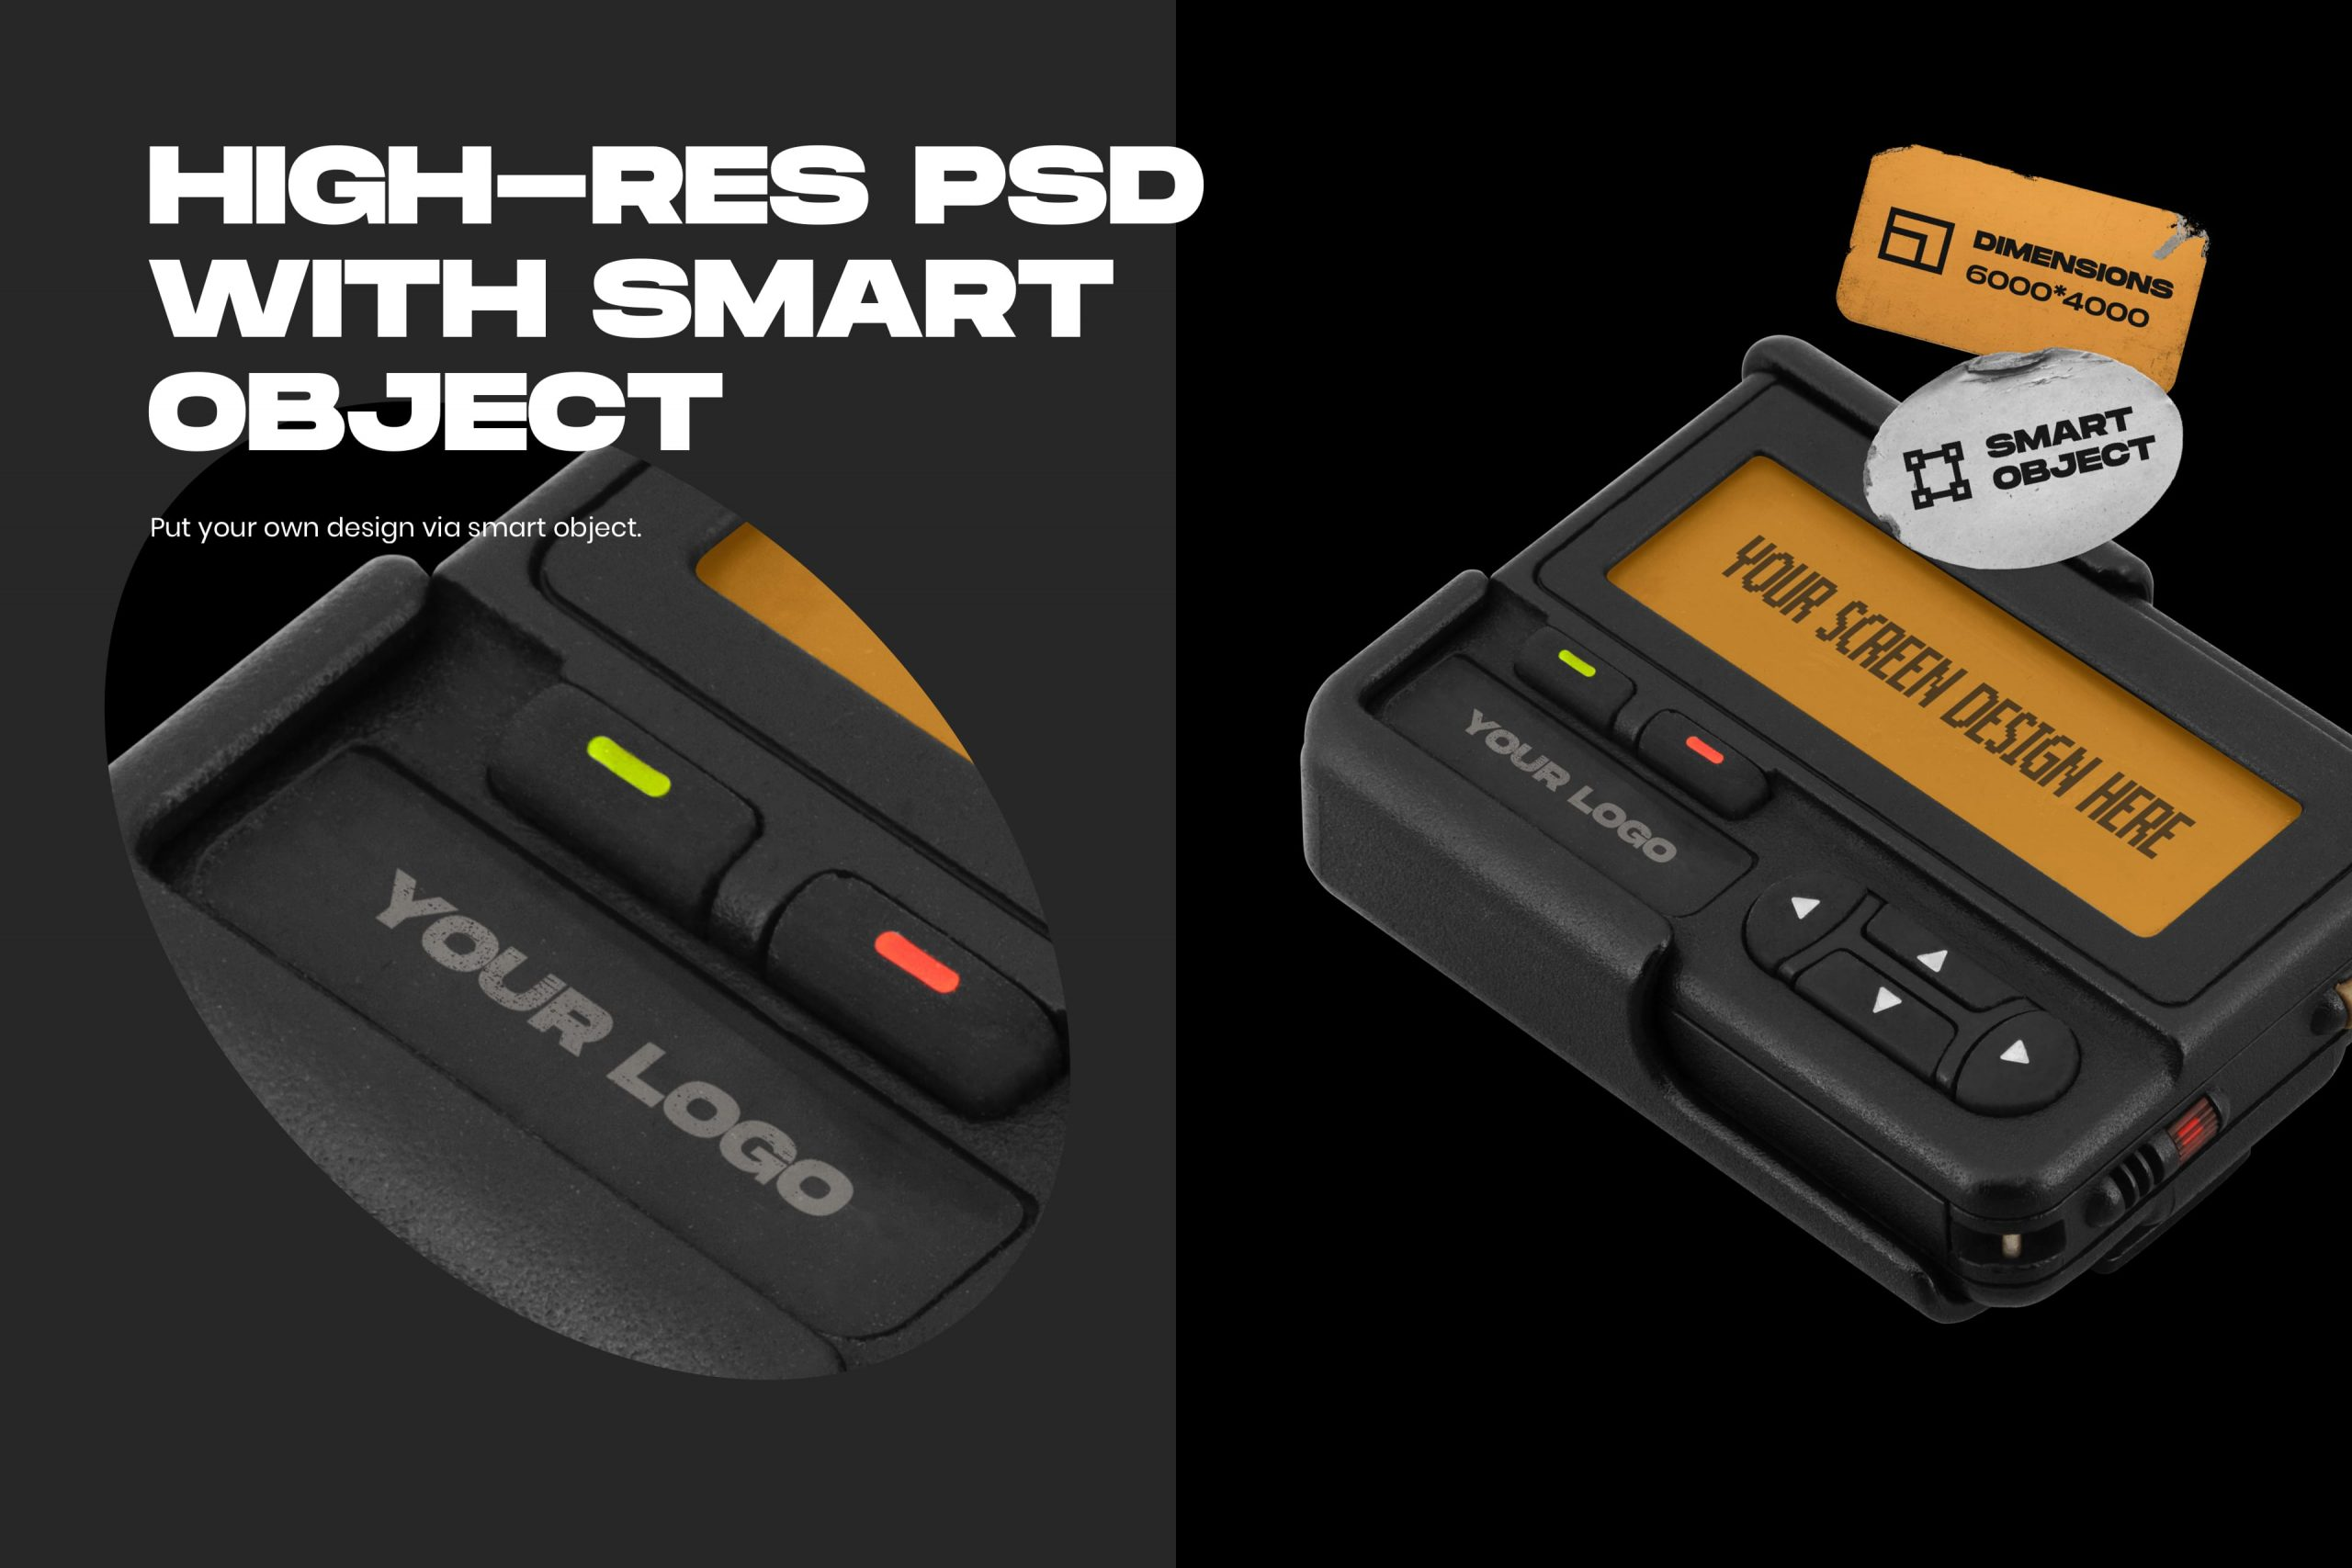 Retro Pager Mockup - High-res PSD with Smart Object